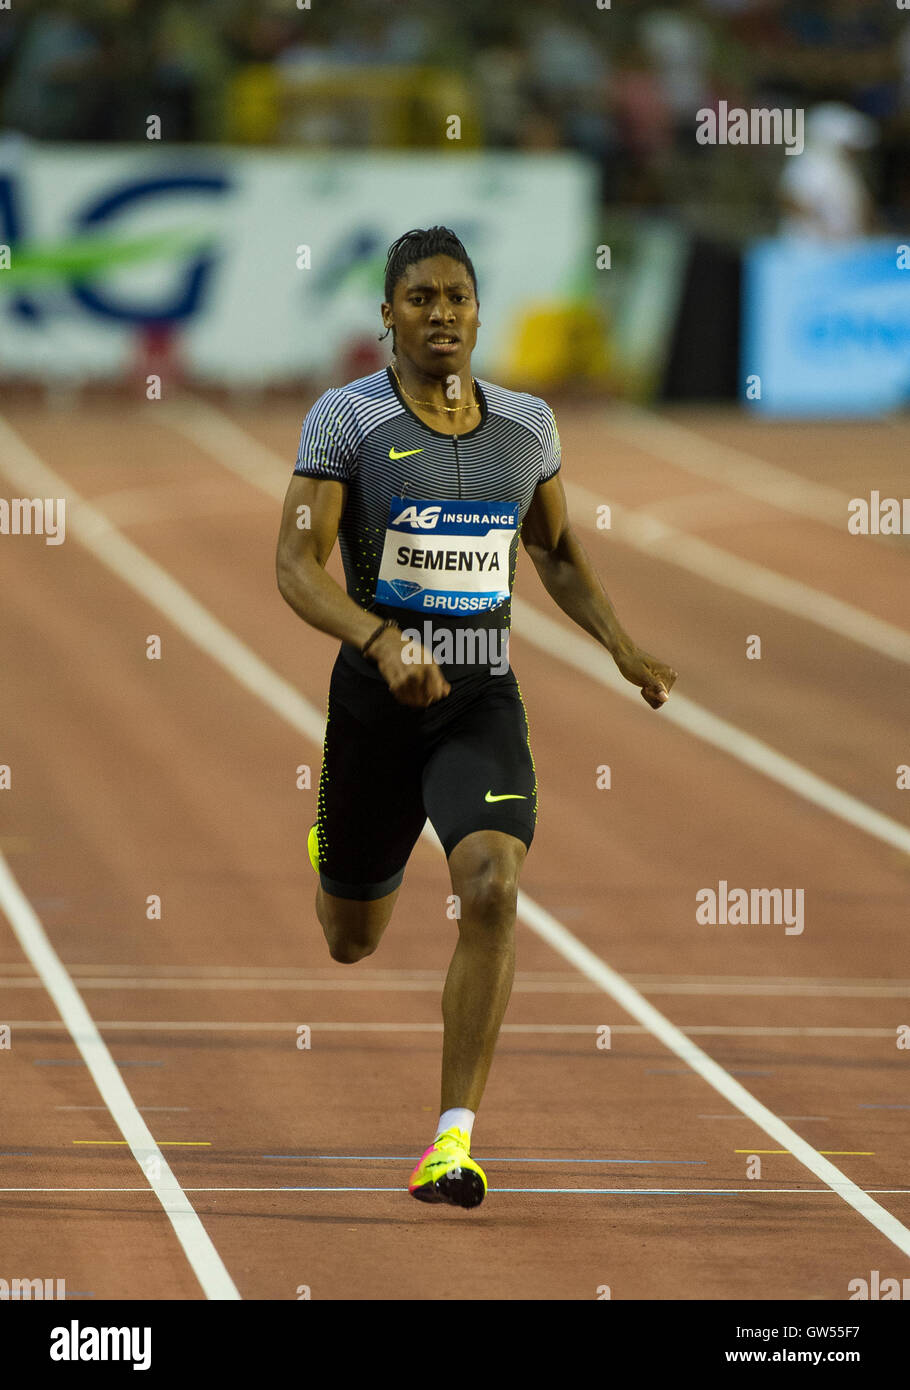 BRUSSELS, BELGIUM - SEPTEMBER 9: Caster Semenya competing in the Women's 400m at the AG Insurance Memorial Van - Stock Image